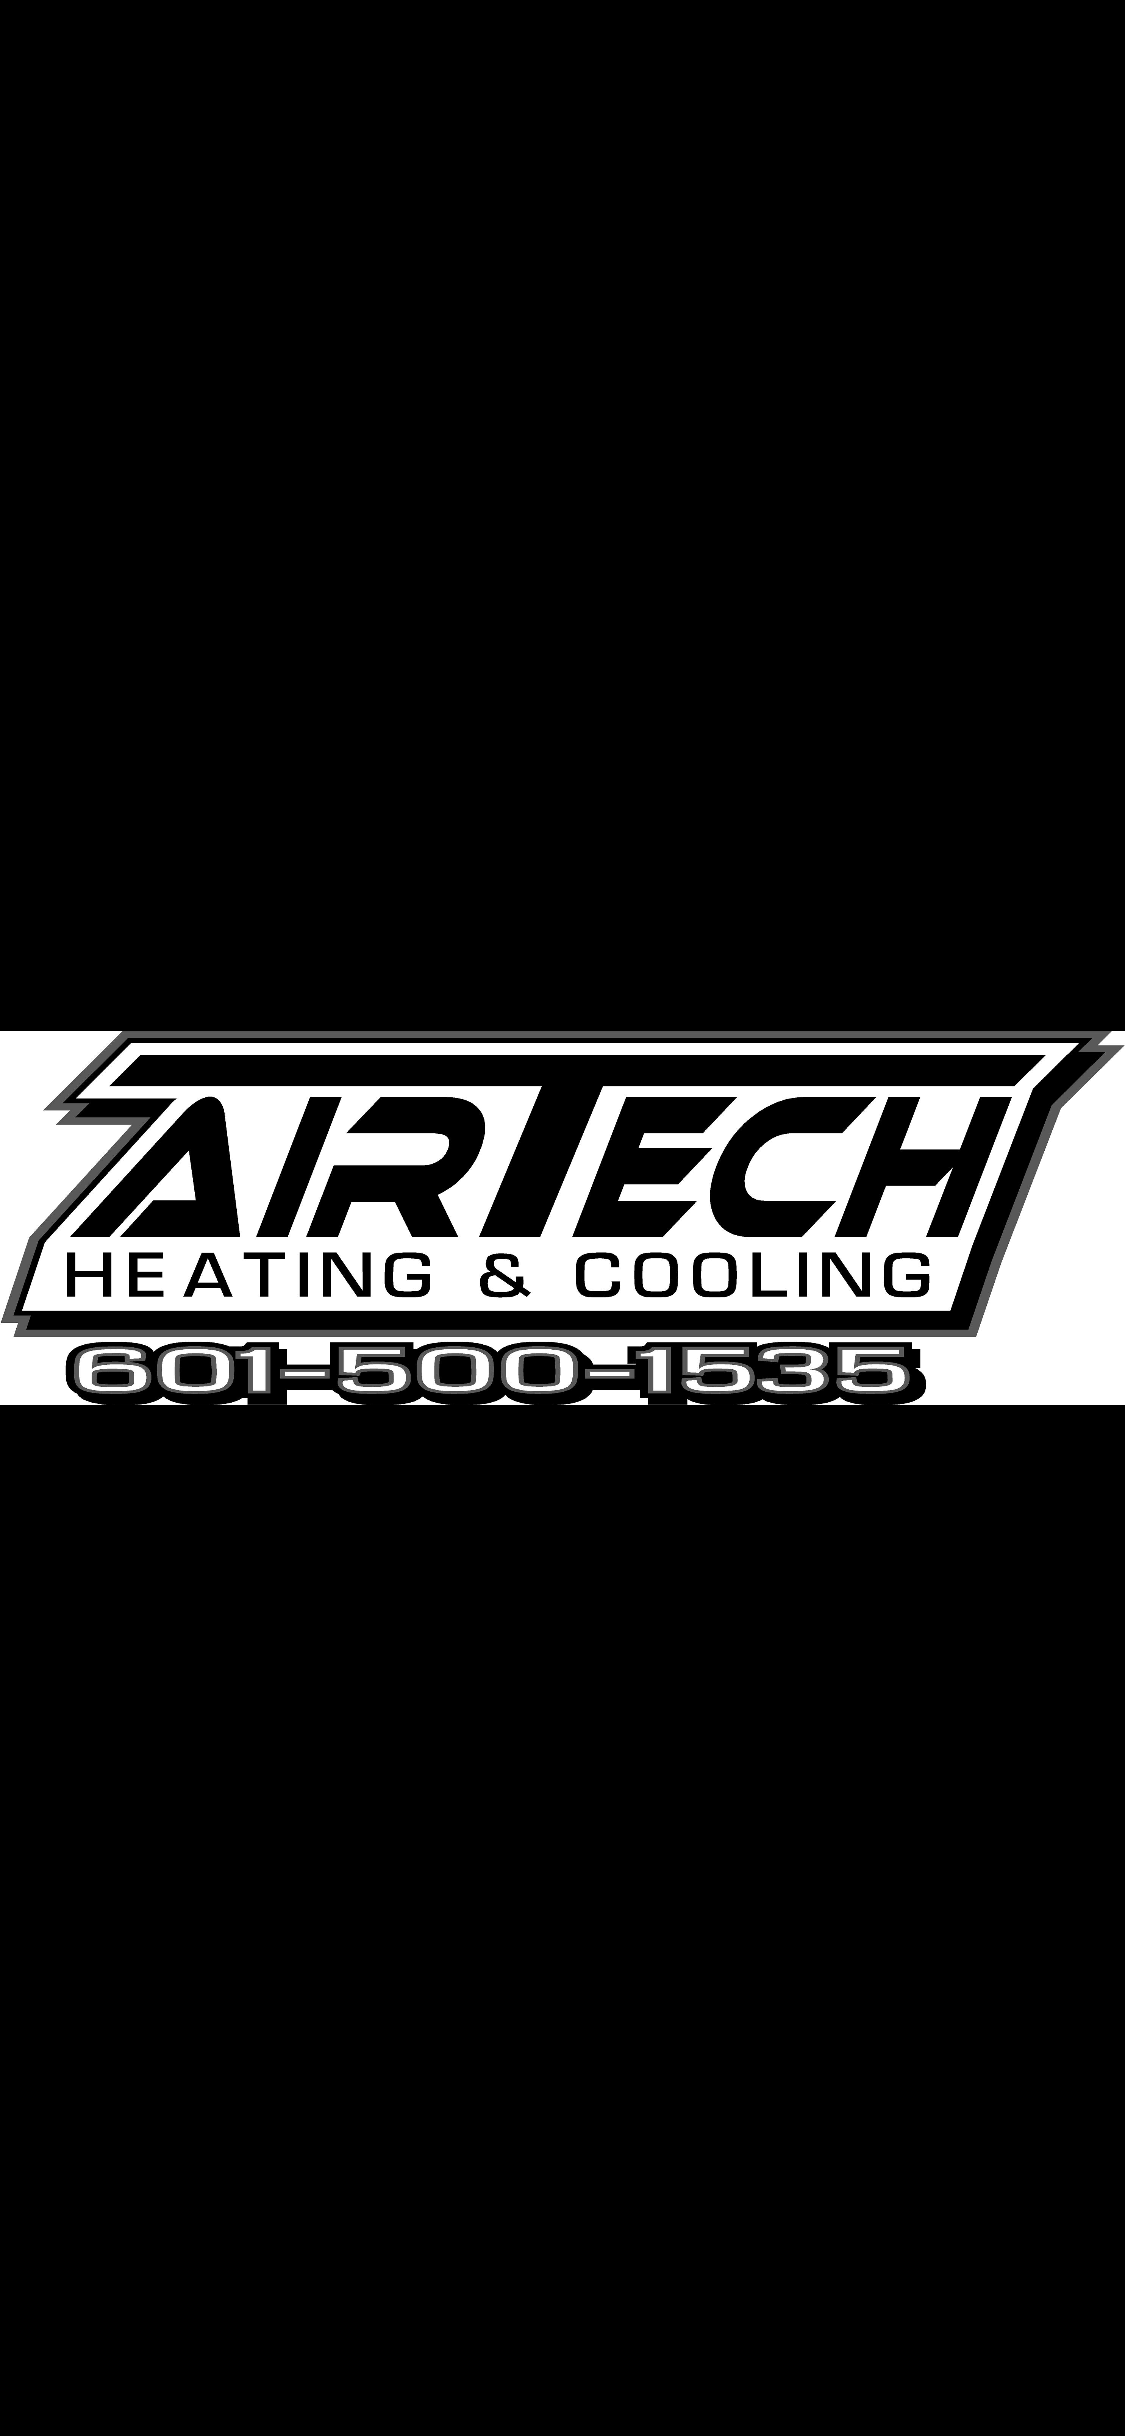 AirTech Heating & Cooling image 5